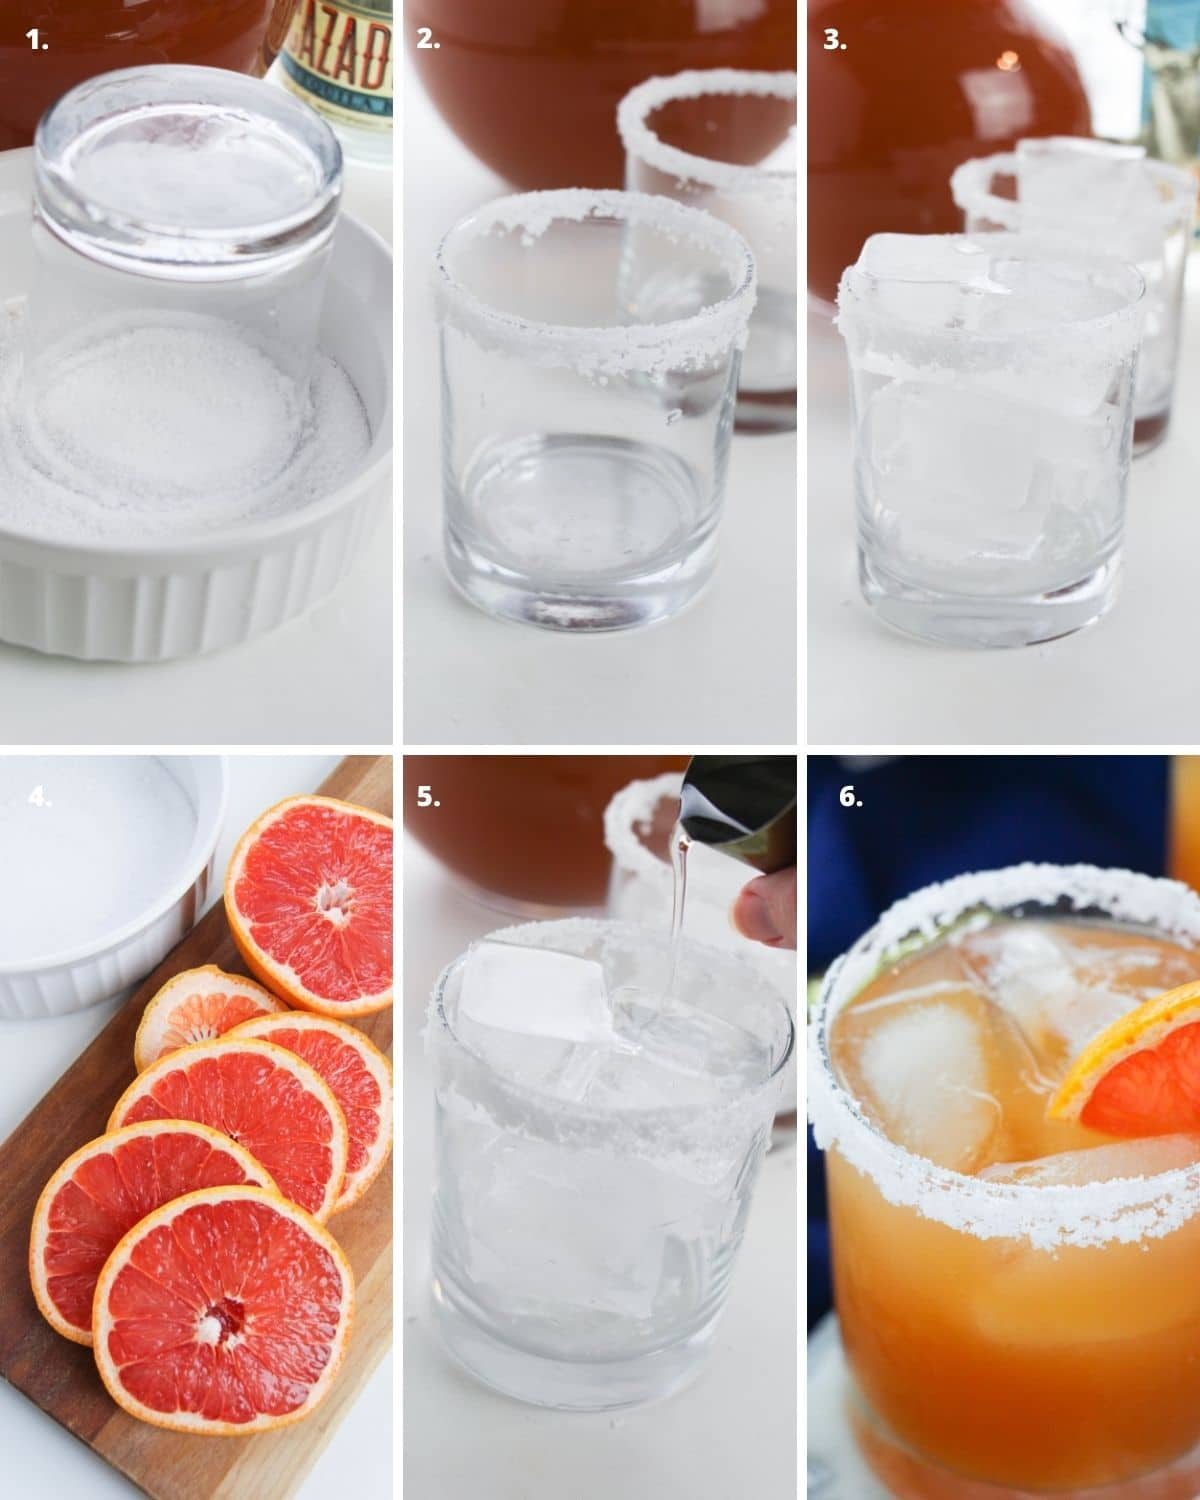 Step by step instructions to make grapefruit margaritas.